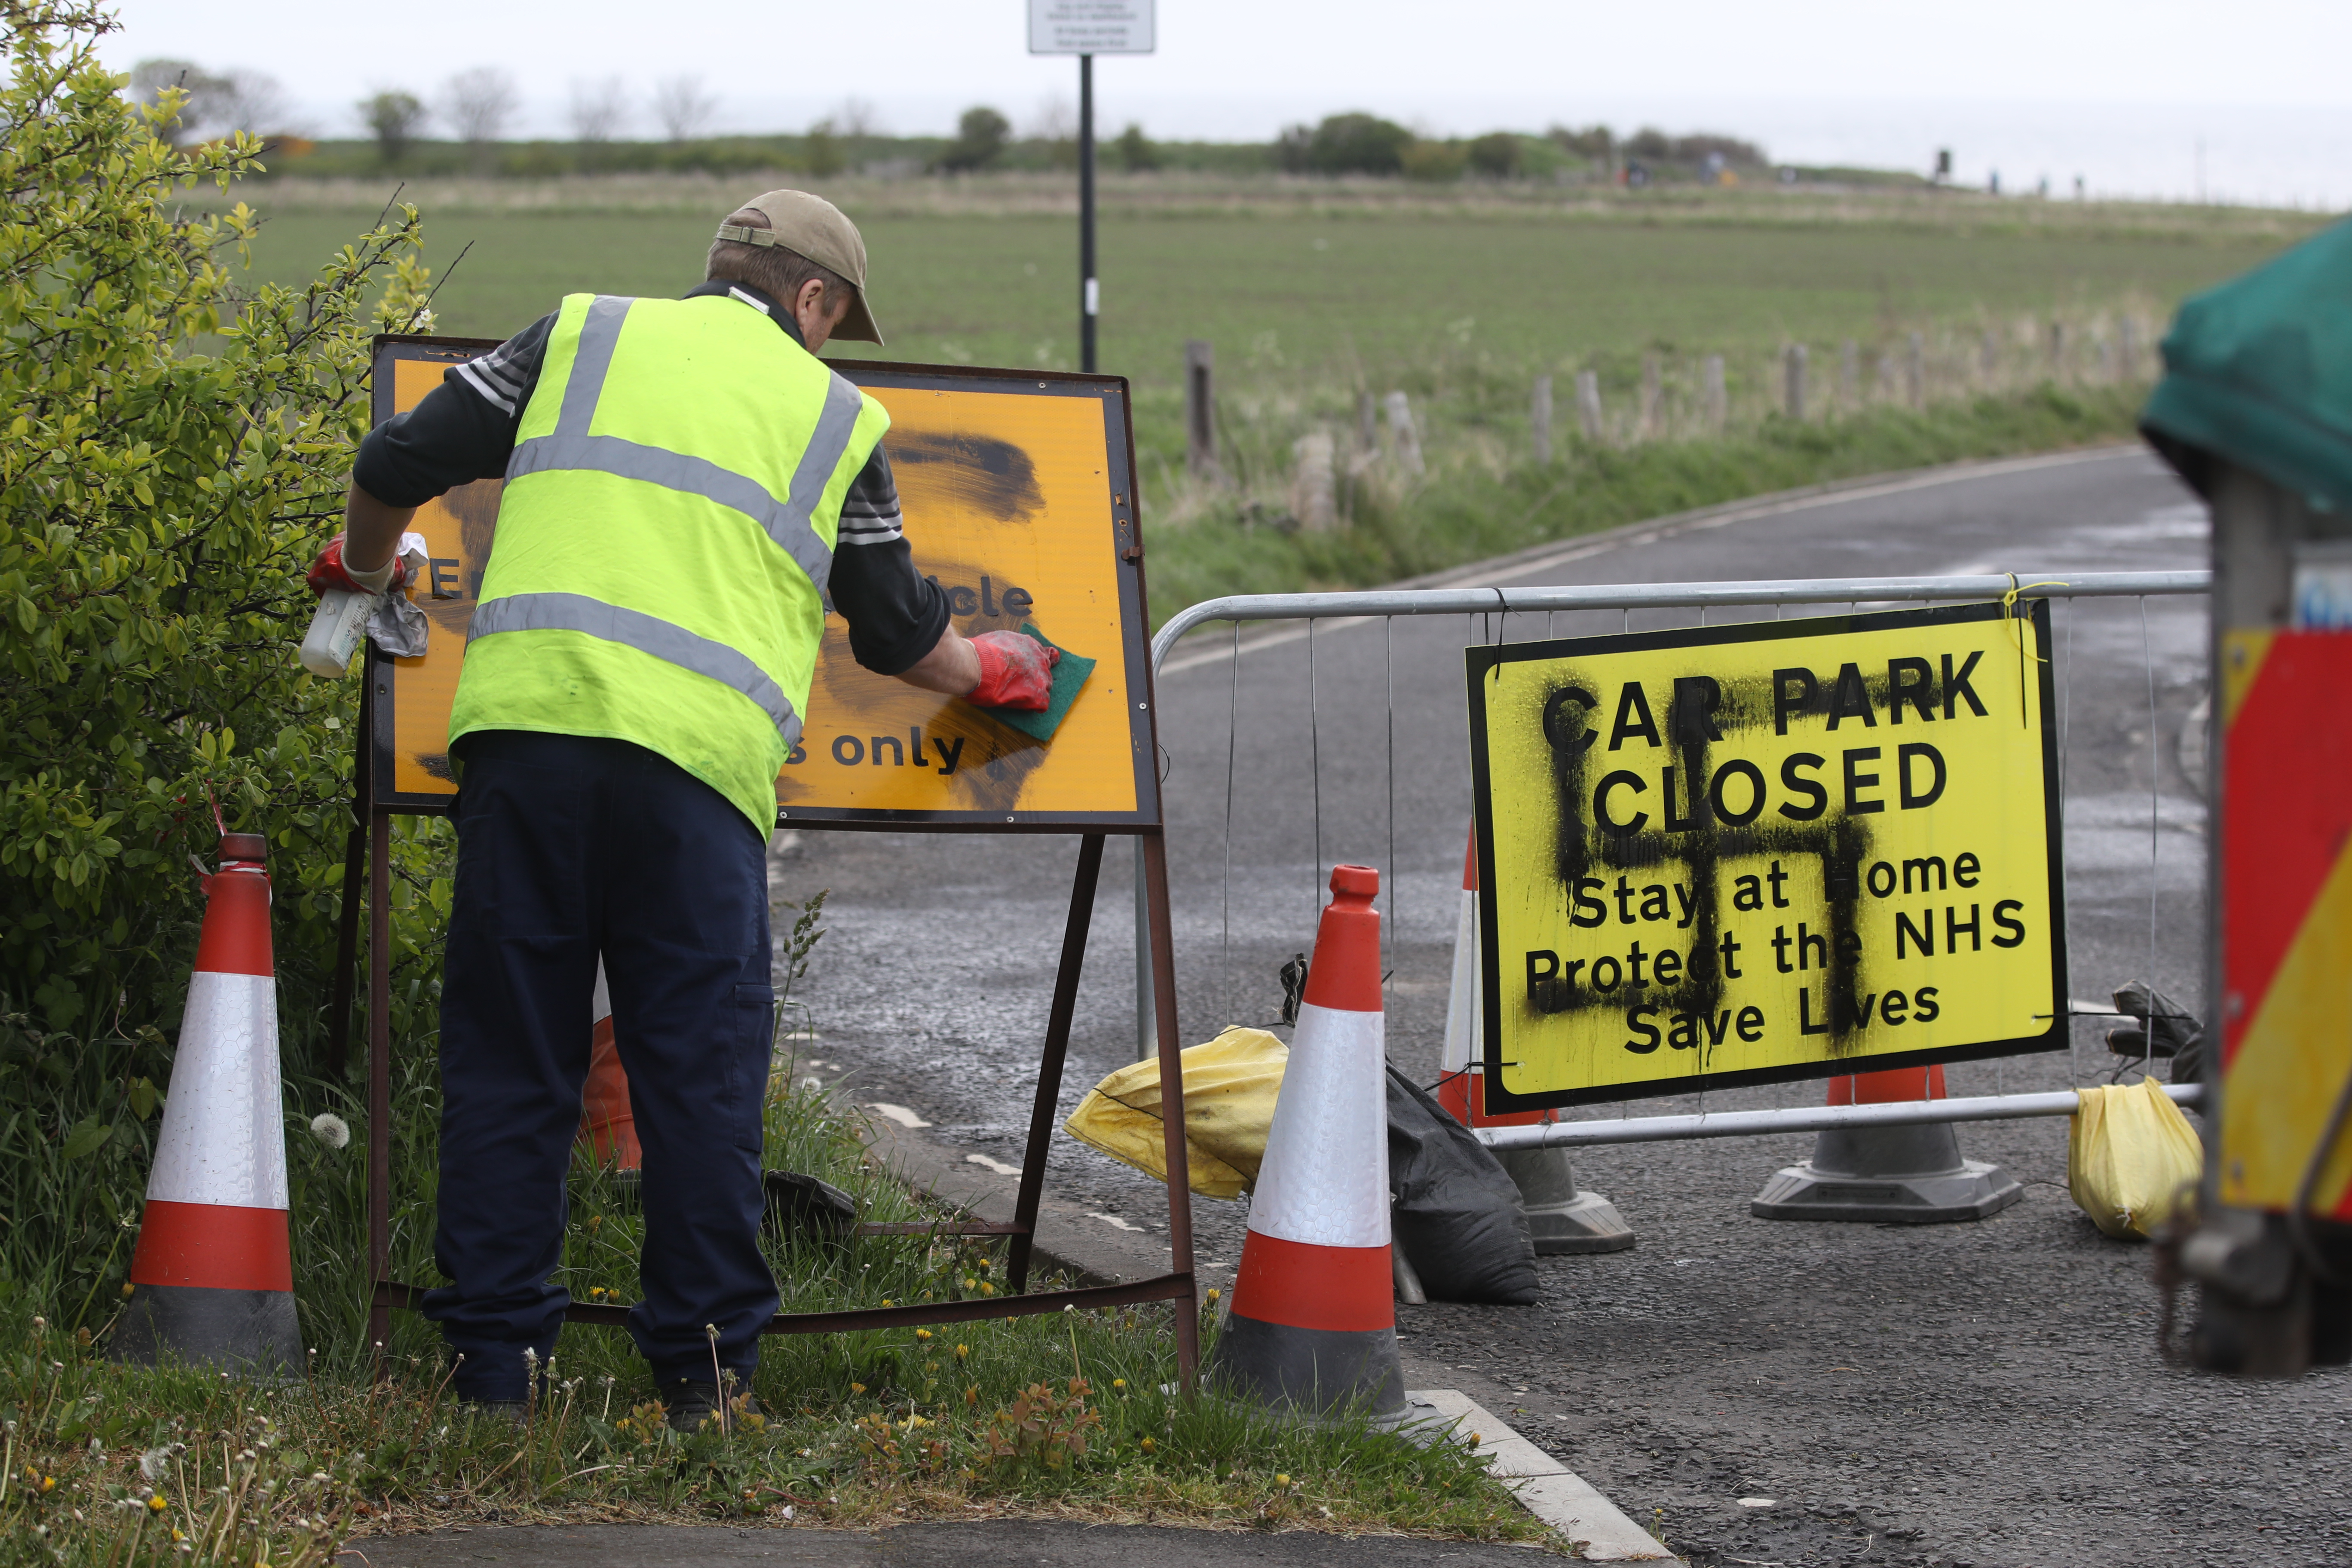 A worker removes a swastika spray painted on a sign at the entrance to a closed road and car park near Whitley Bay lighthouse, Northumberland. Graffiti has appeared on signs at several car parks along the Northumberland coastal road as the UK continues in lockdown to help curb the spread of the coronavirus.